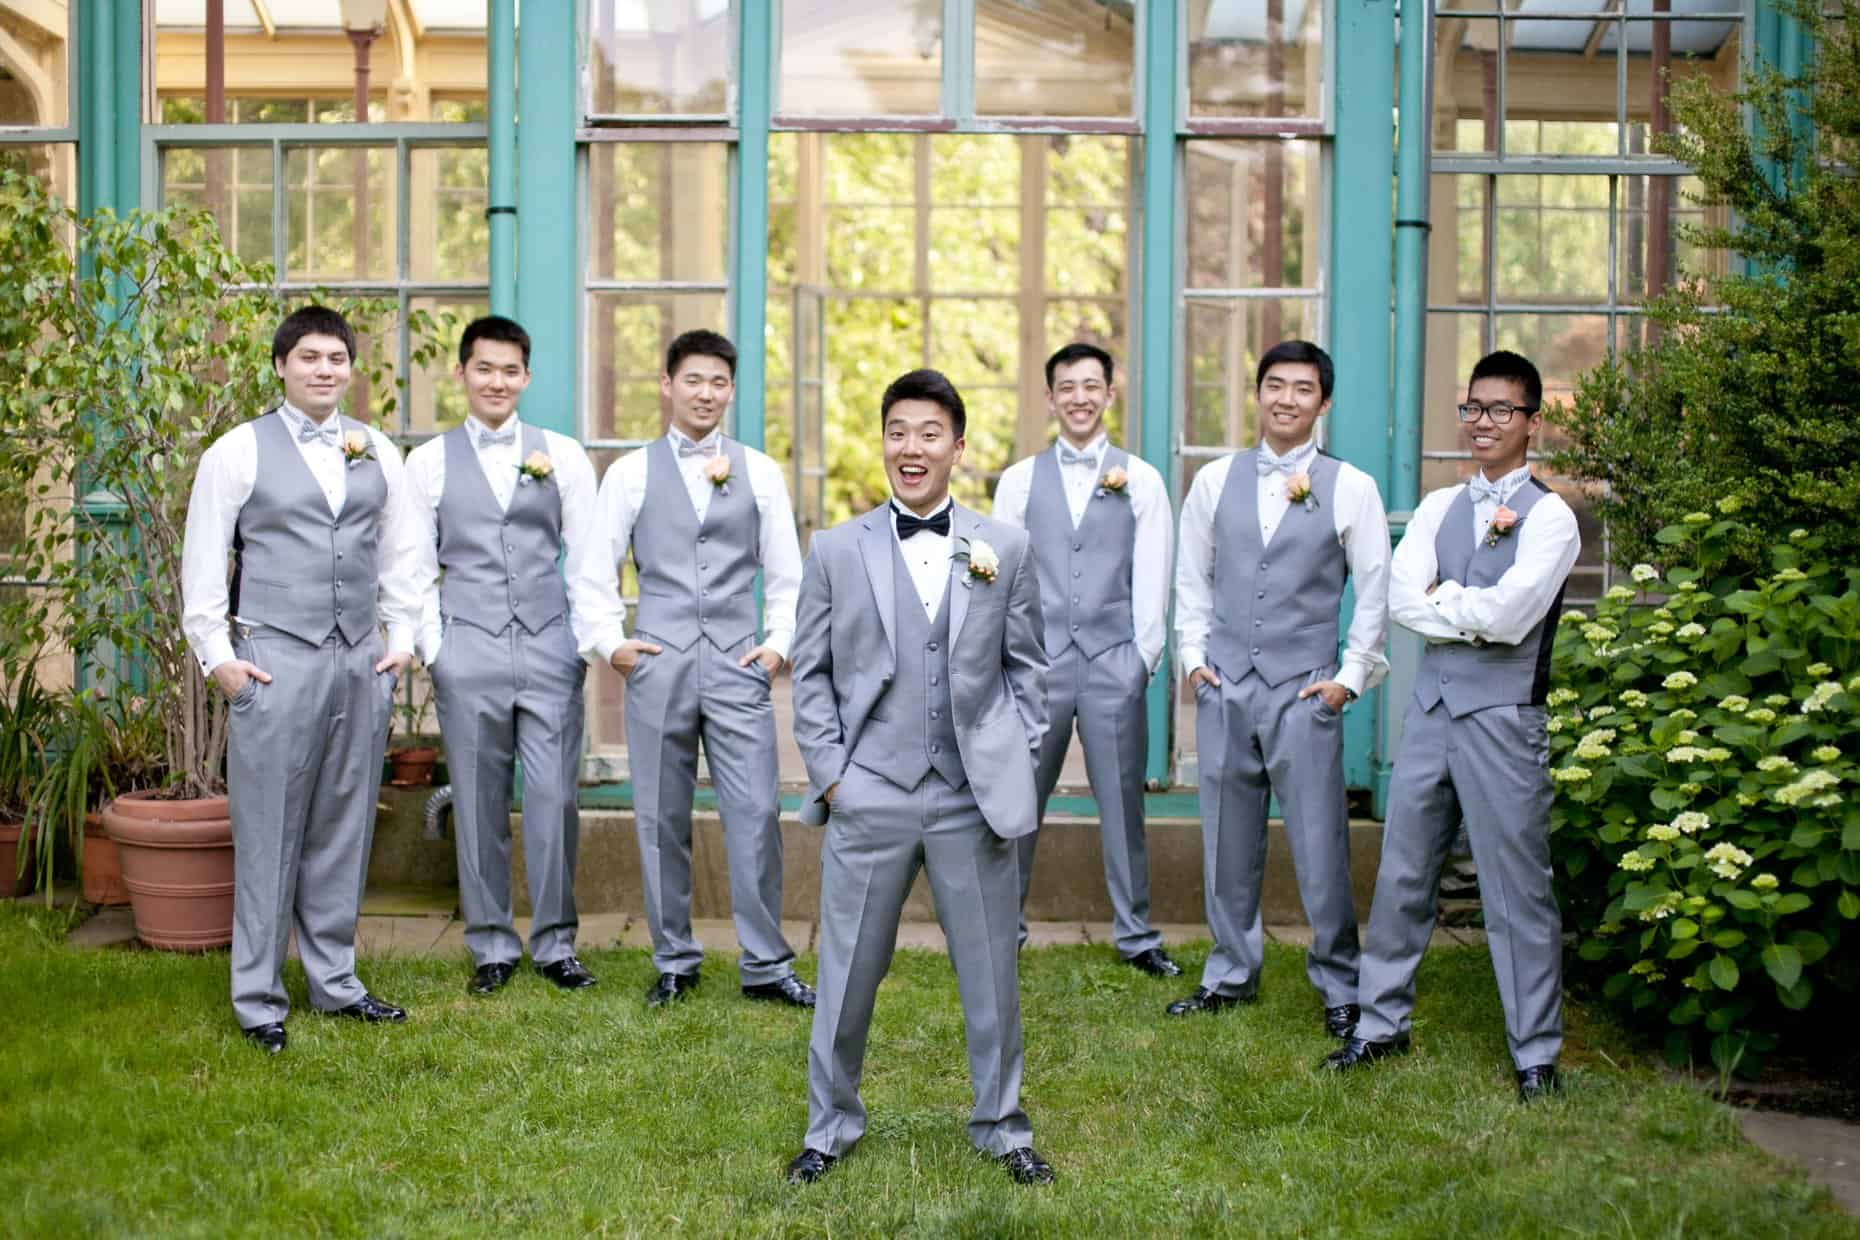 Groom with groomsman in front of the mansion at Rockwood Carriage House